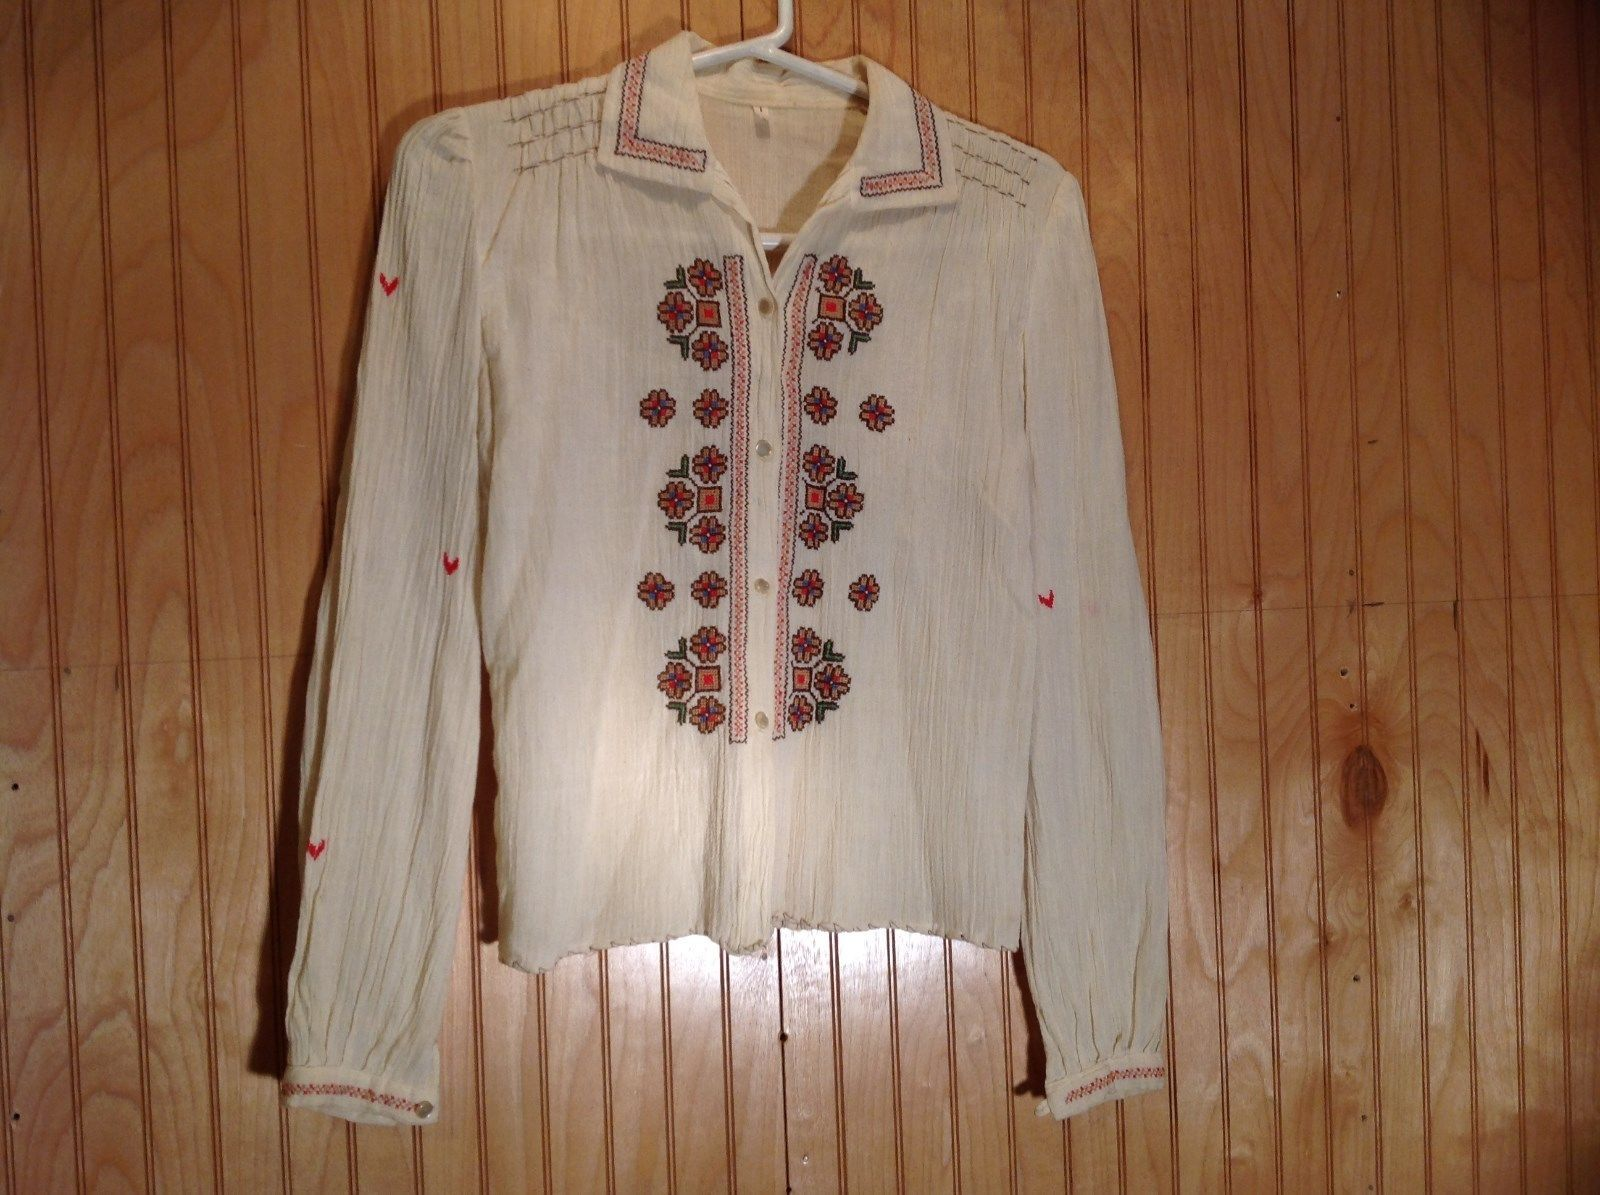 Size 1 Long Sleeve Button Up Off White Shirt Stitched on Designs